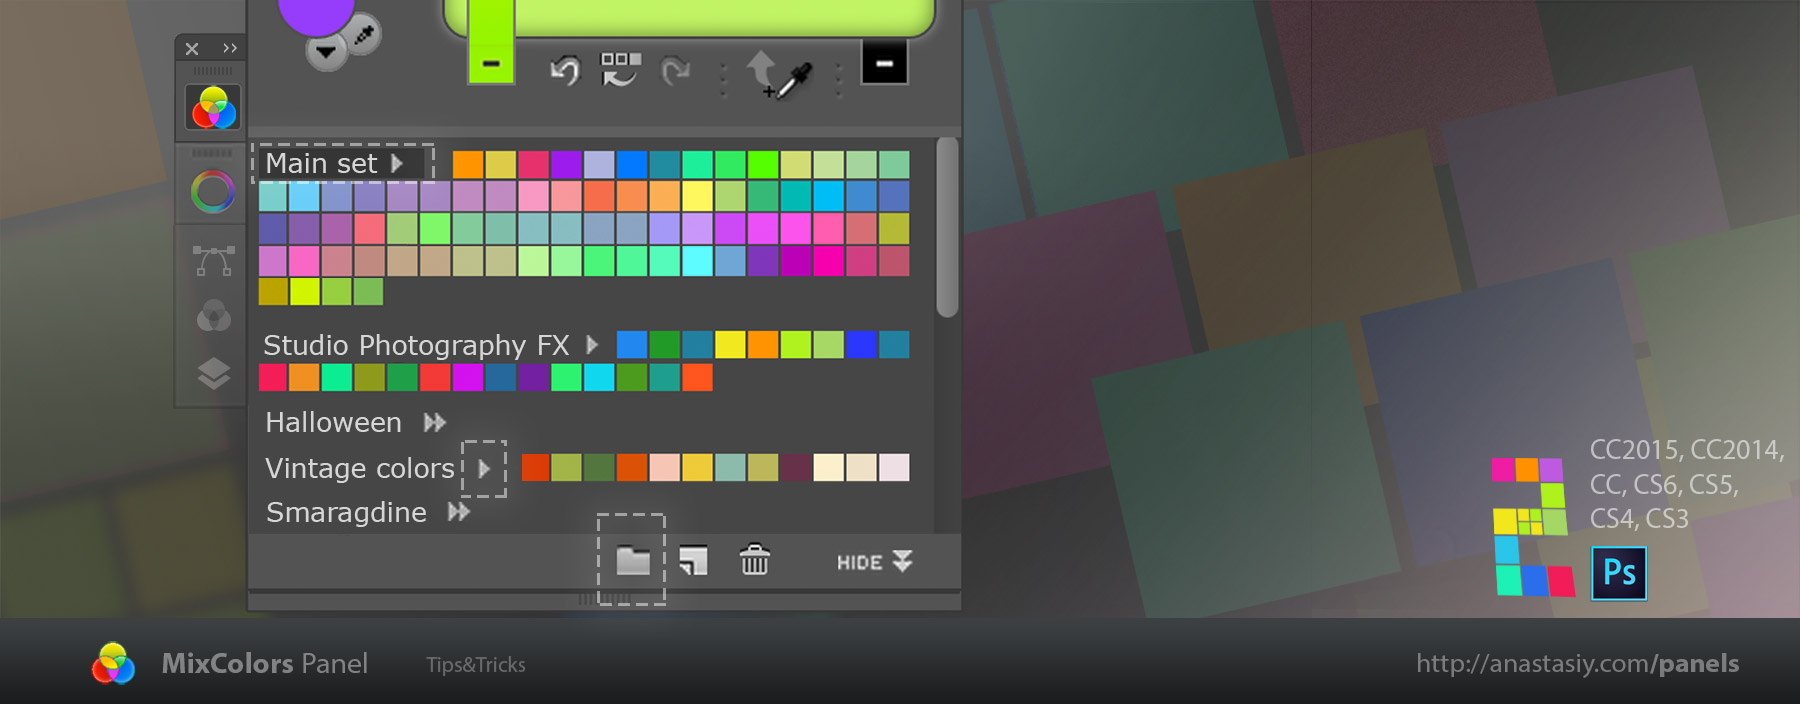 MixColors panel with swatch color groups in Photoshop